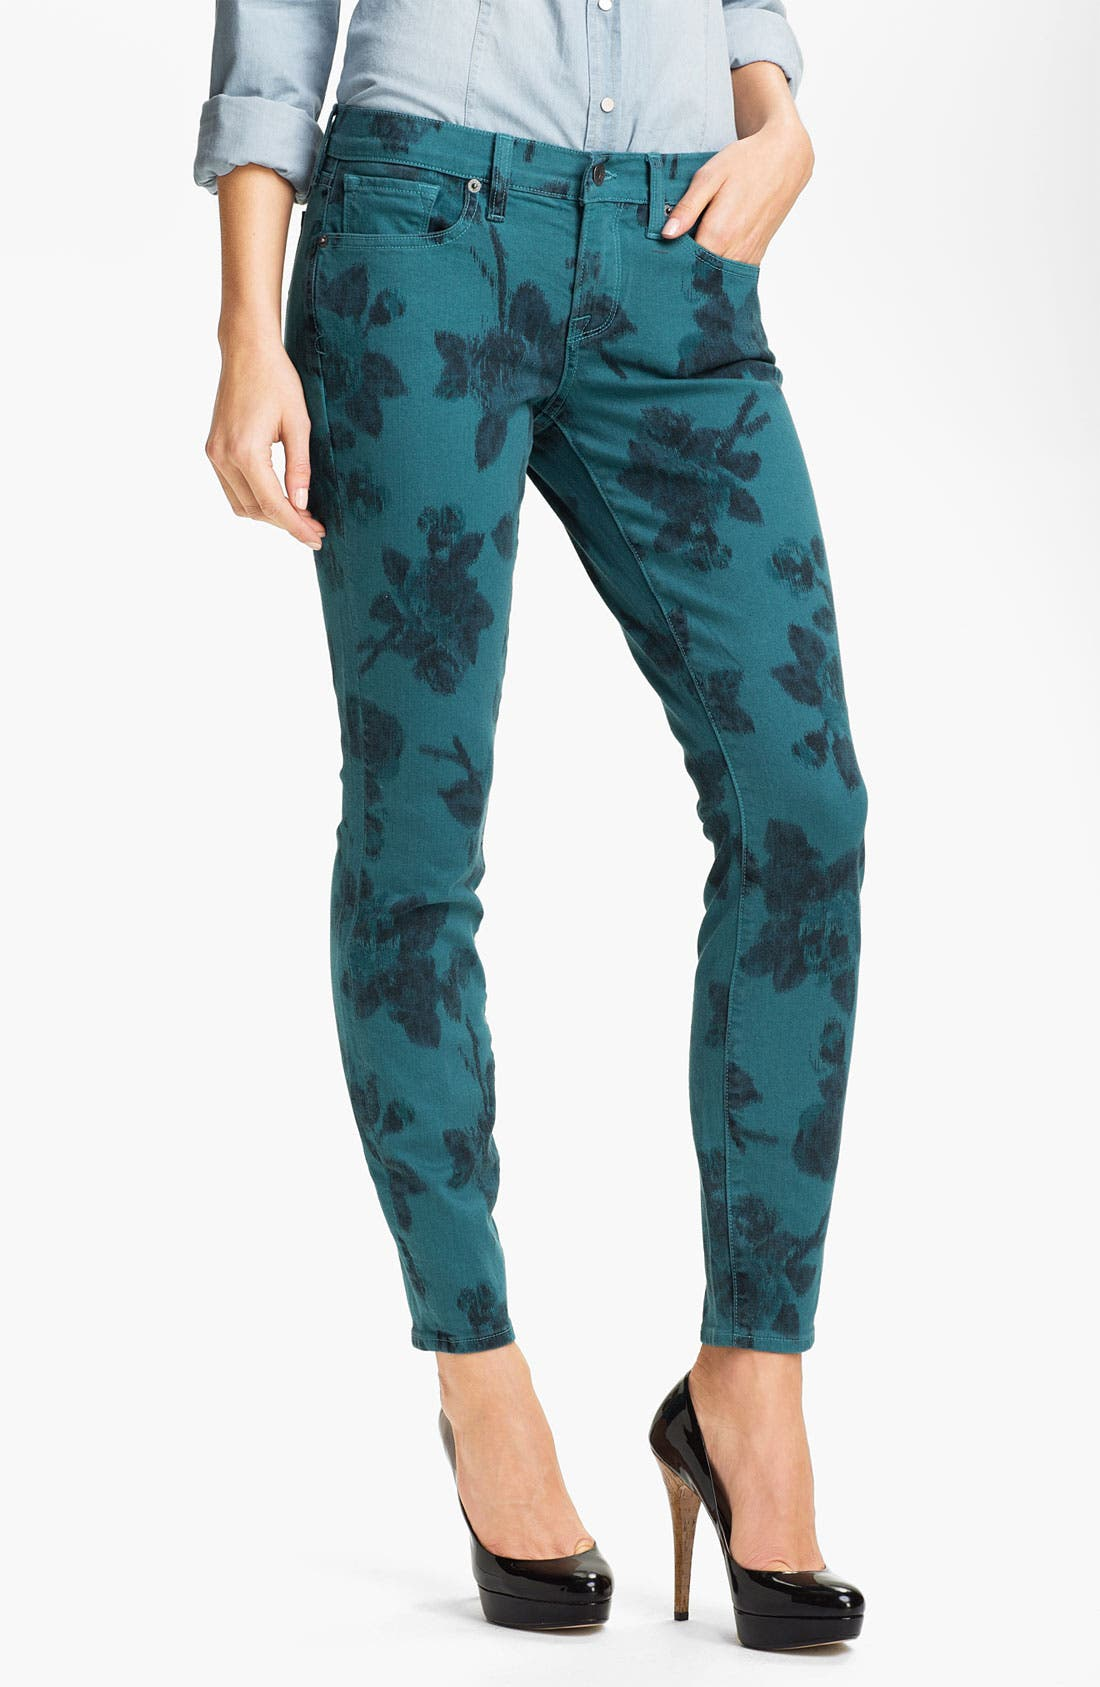 Alternate Image 1 Selected - Lucky Brand 'Charlie' Ikat Print Skinny Jeans (Online Exclusive)